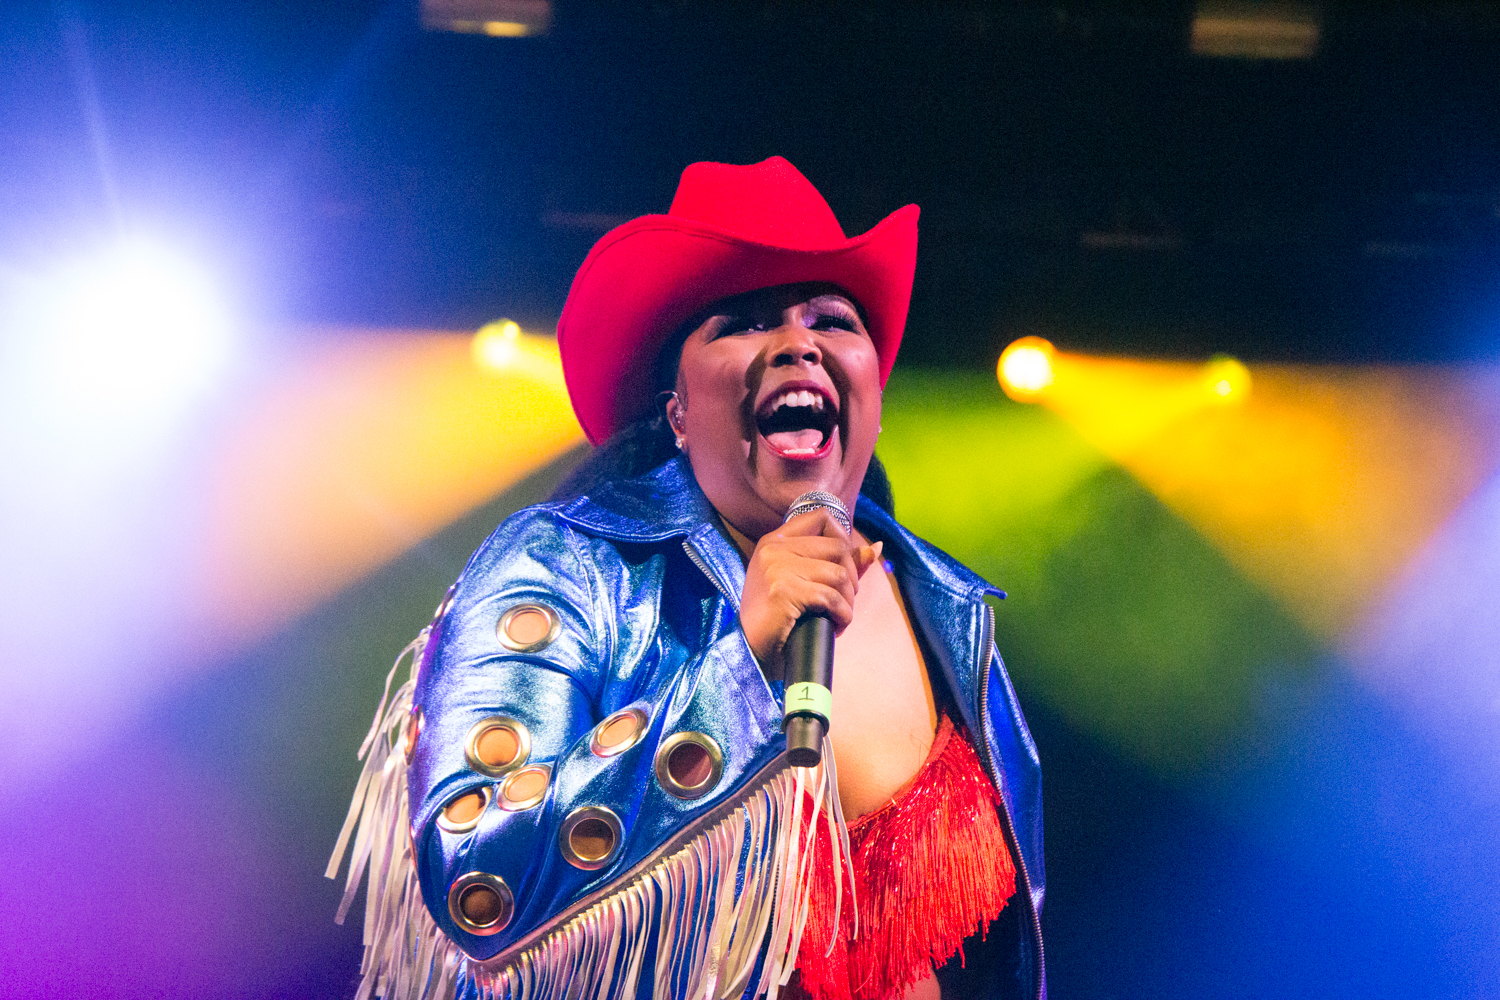 Lizzo, Amyl & the Sniffers, Pottery and more bring SXSW 2019 to a highlight-packed climax